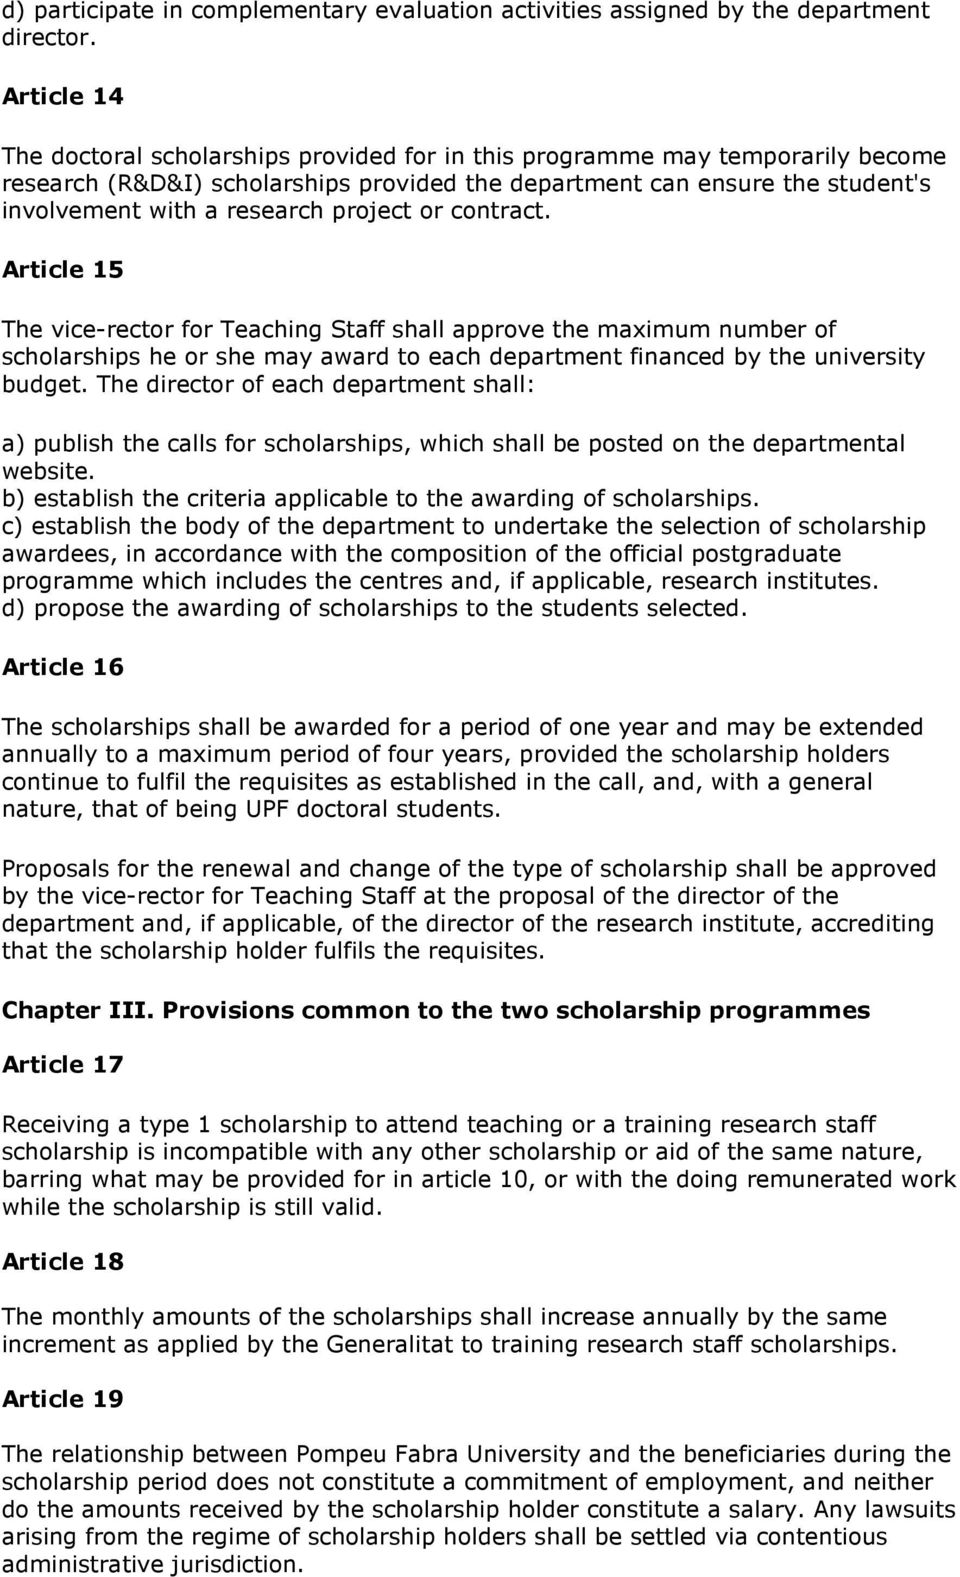 project or contract. Article 15 The vice-rector for Teaching Staff shall approve the maximum number of scholarships he or she may award to each department financed by the university budget.